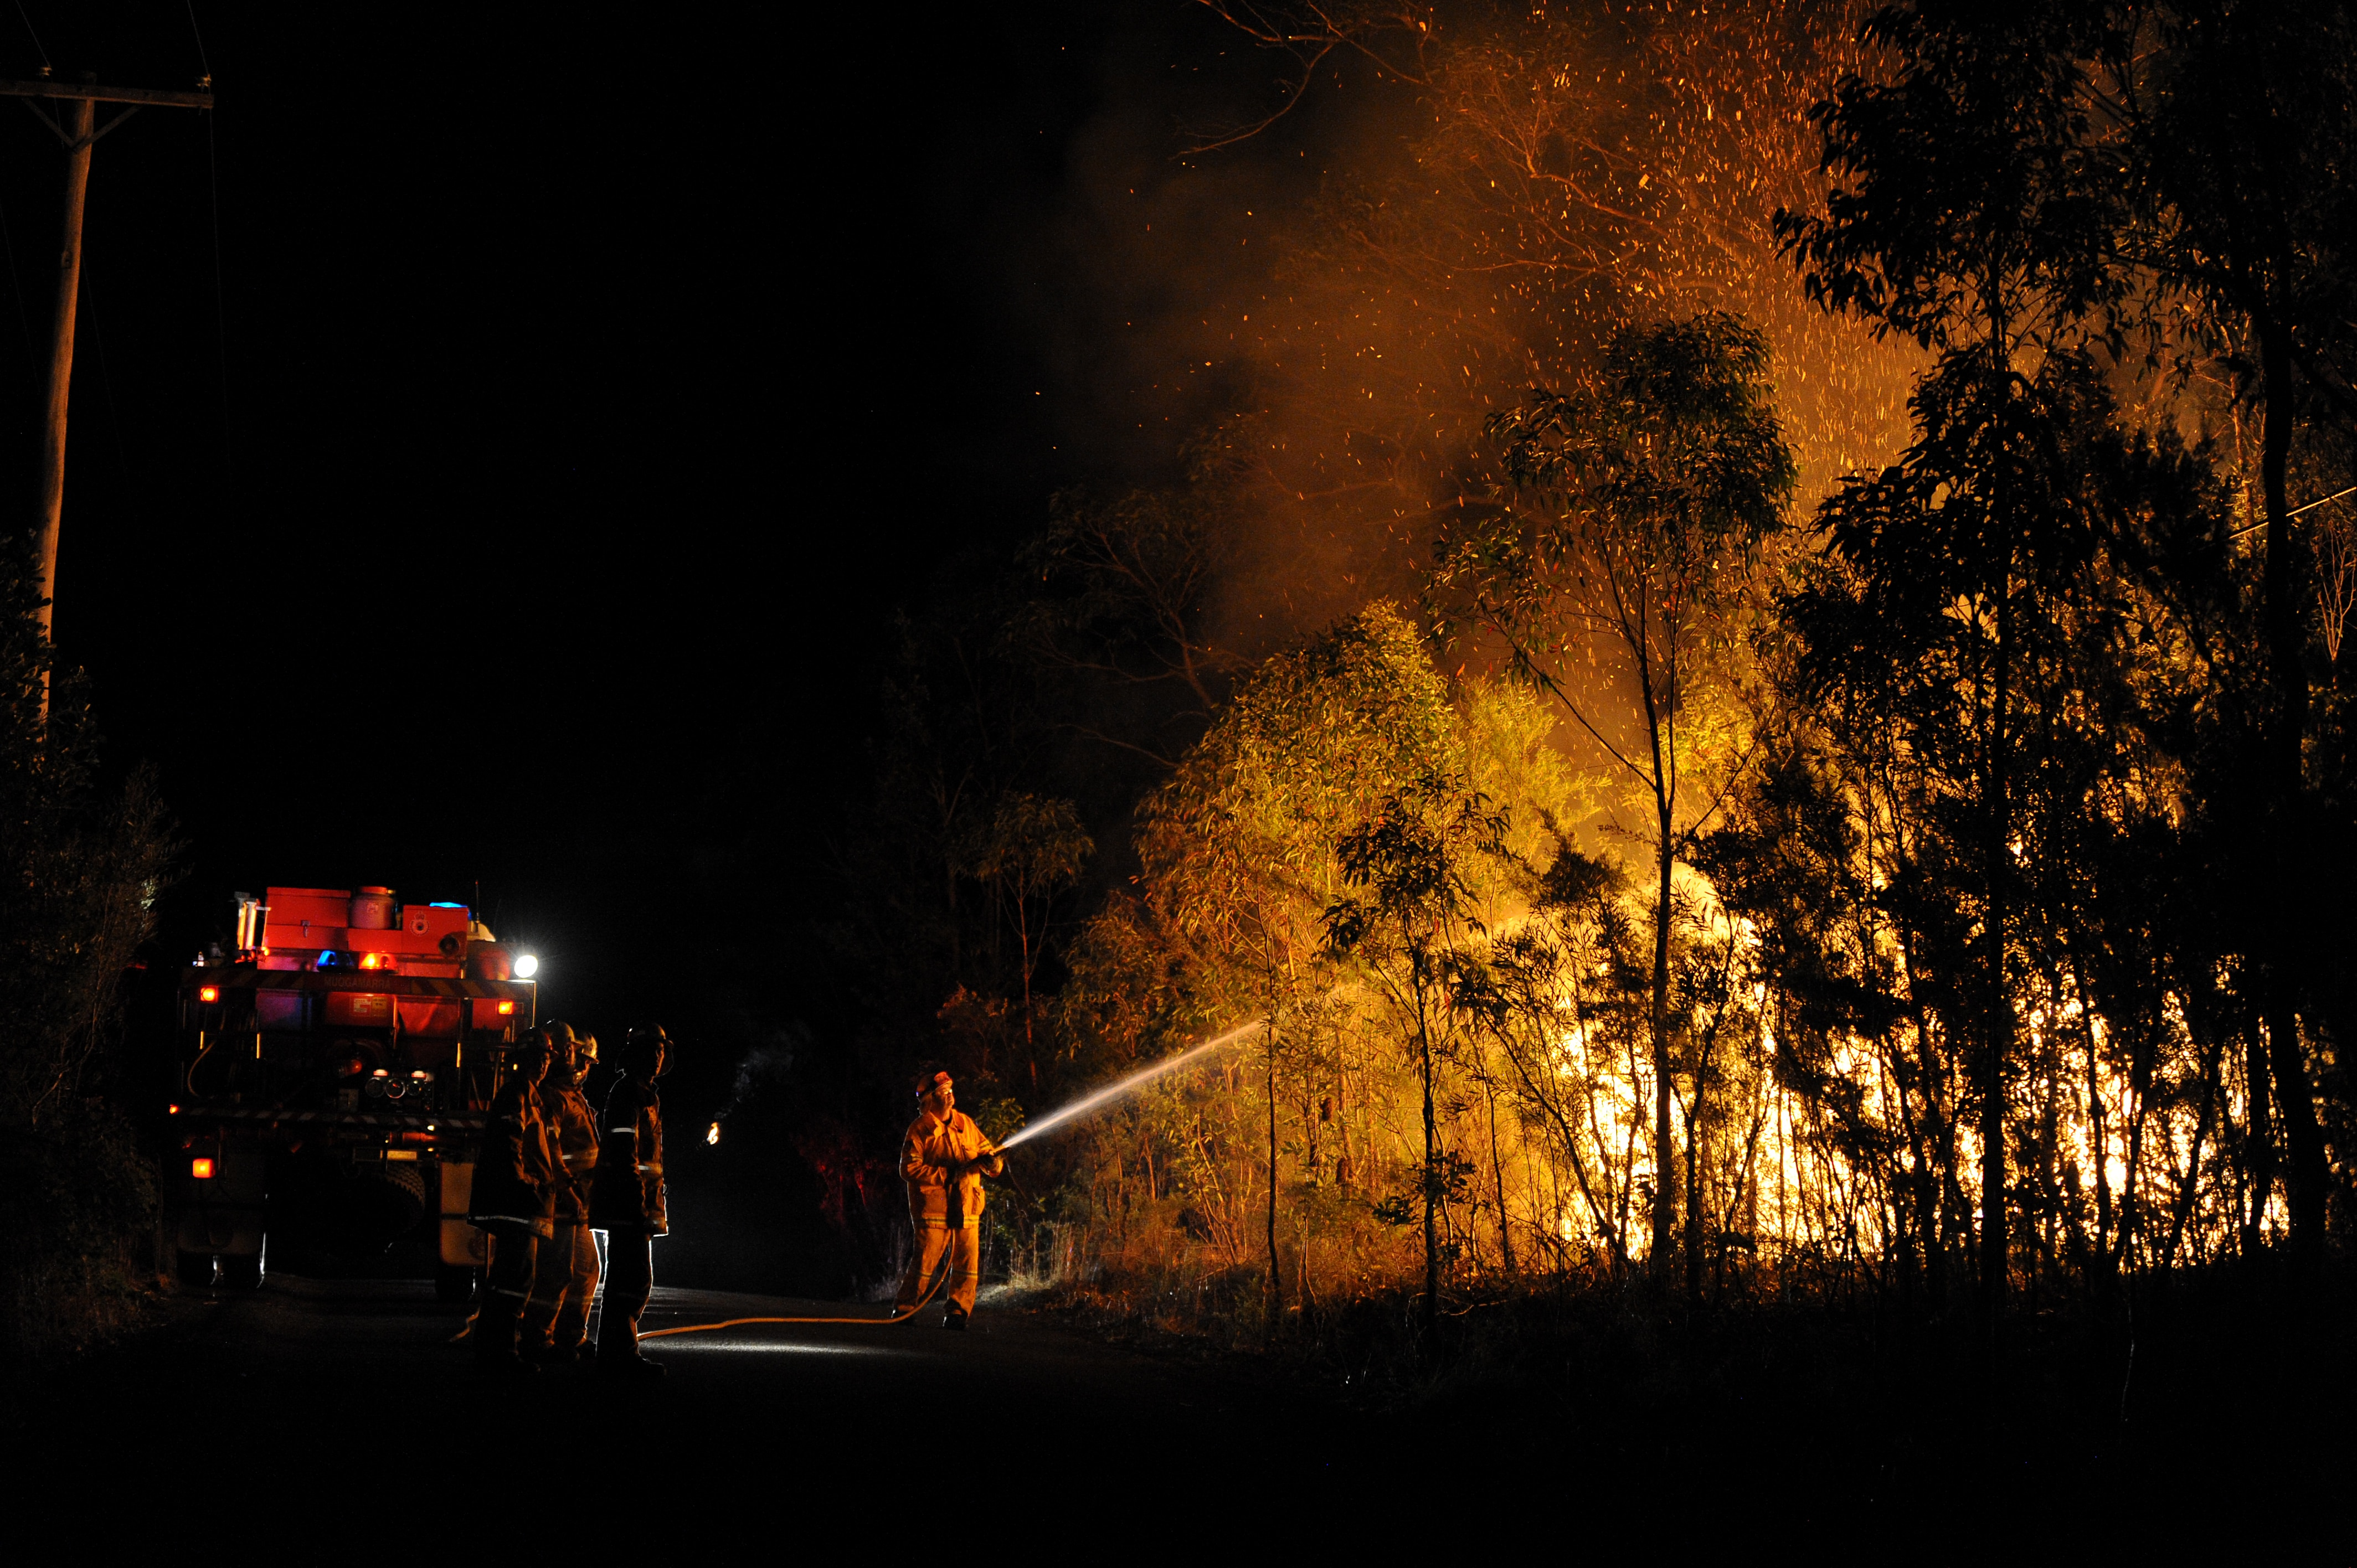 nsw fires - photo #17